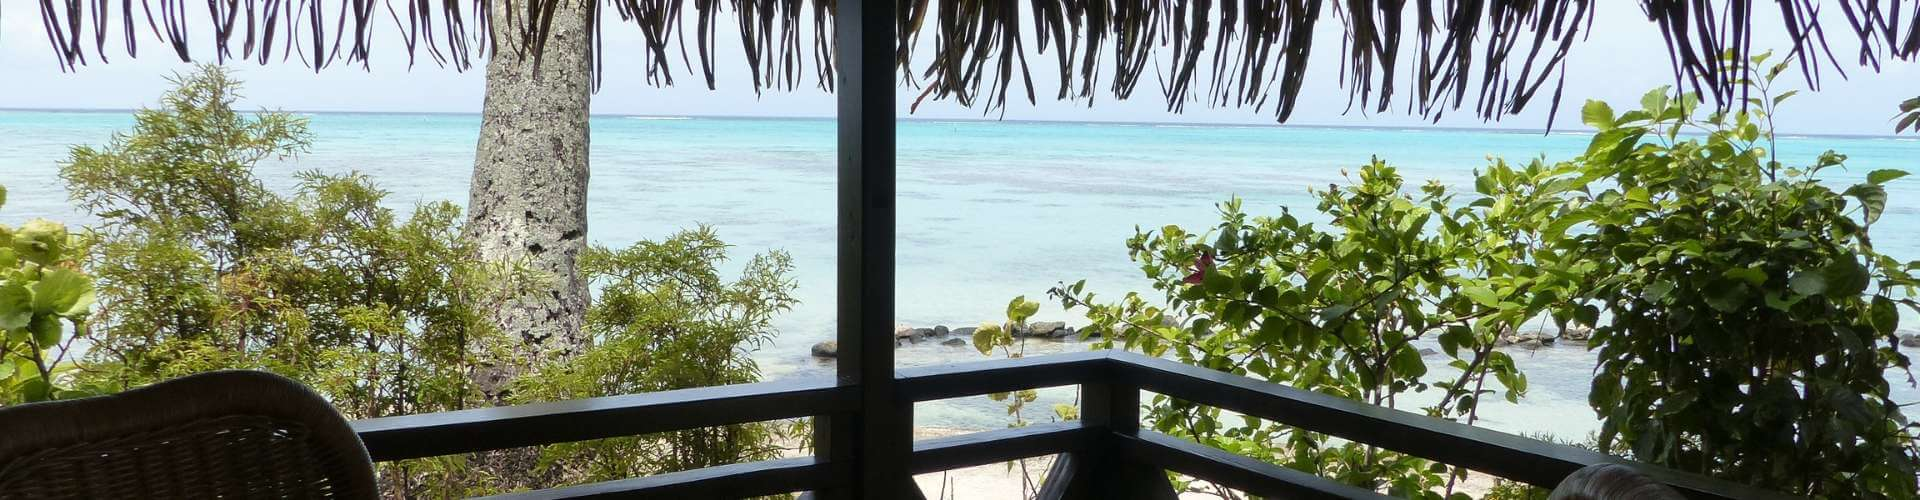 Discover hidden gems staying at Tahitian guesthouses with EASYTahiti